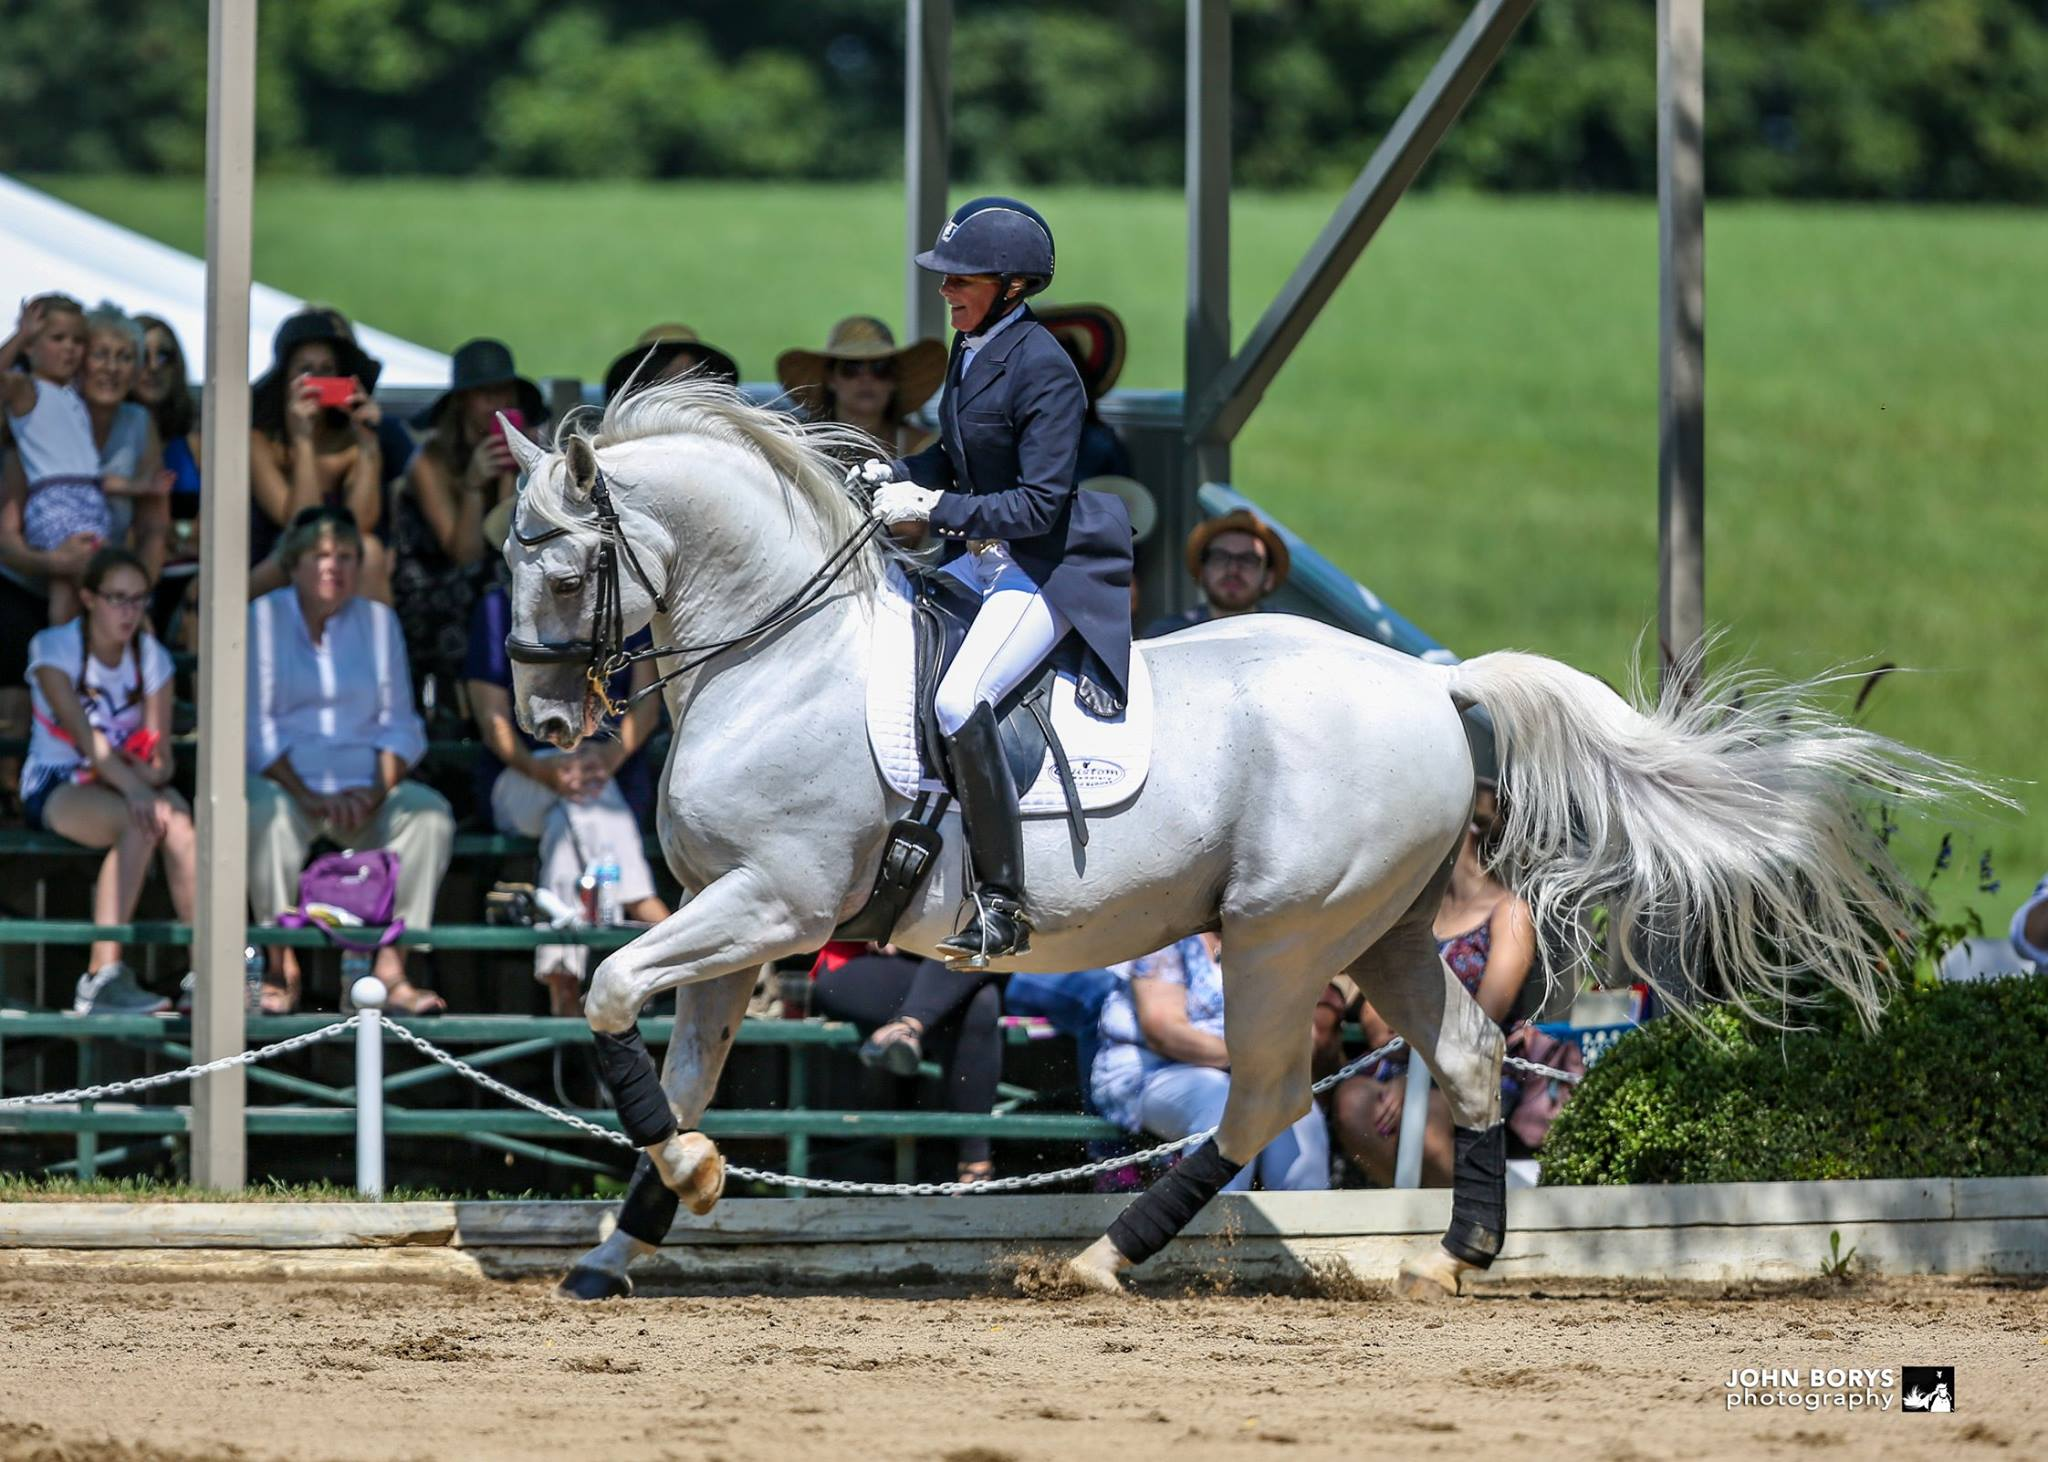 Lake County, Illinois, CVB - - Tempel Lipizzan's Performance